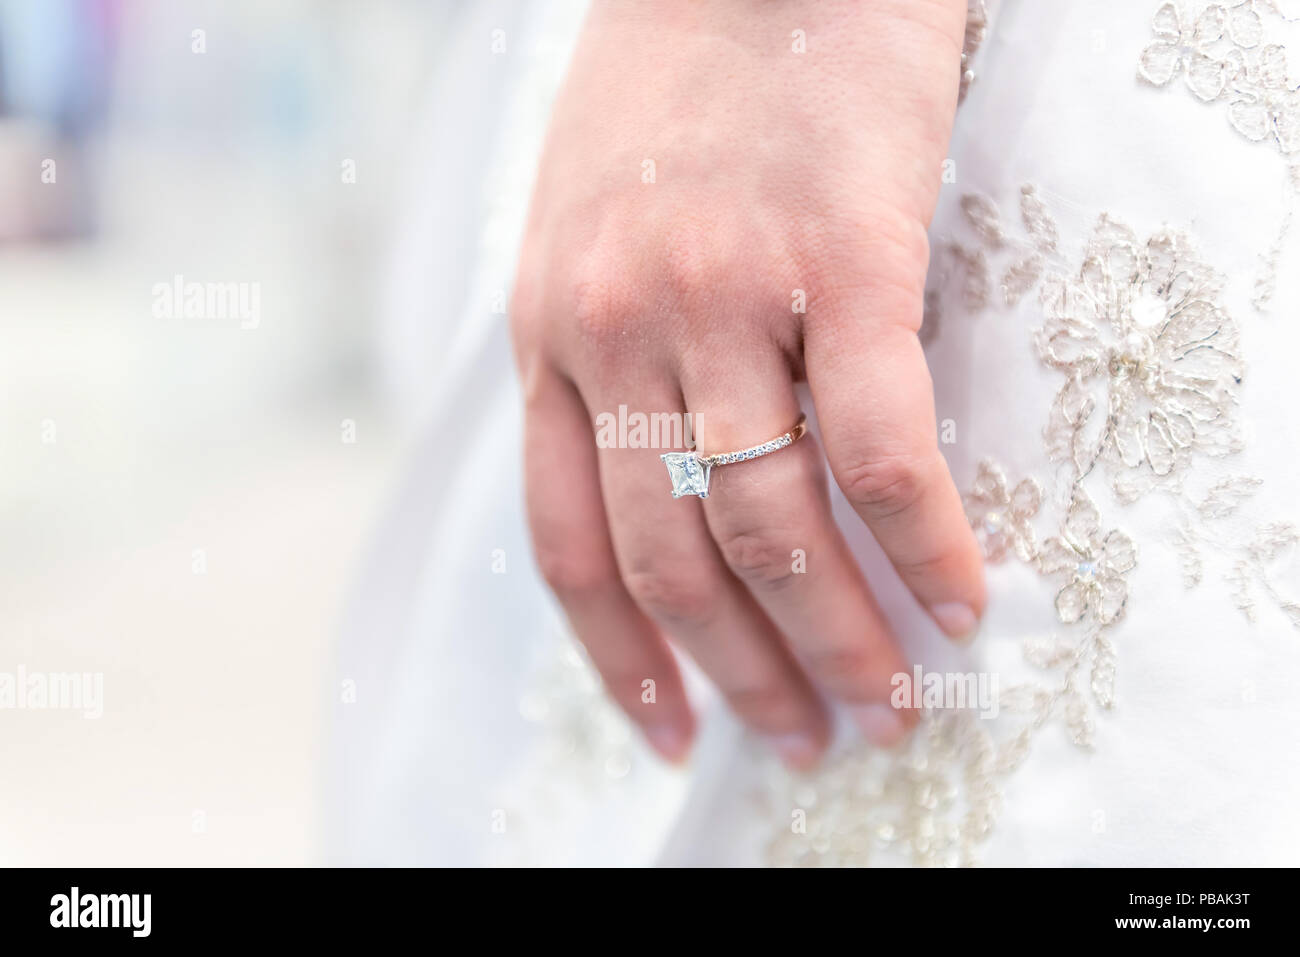 Diamond Ring On Finger Stock Photos & Diamond Ring On Finger Stock ...